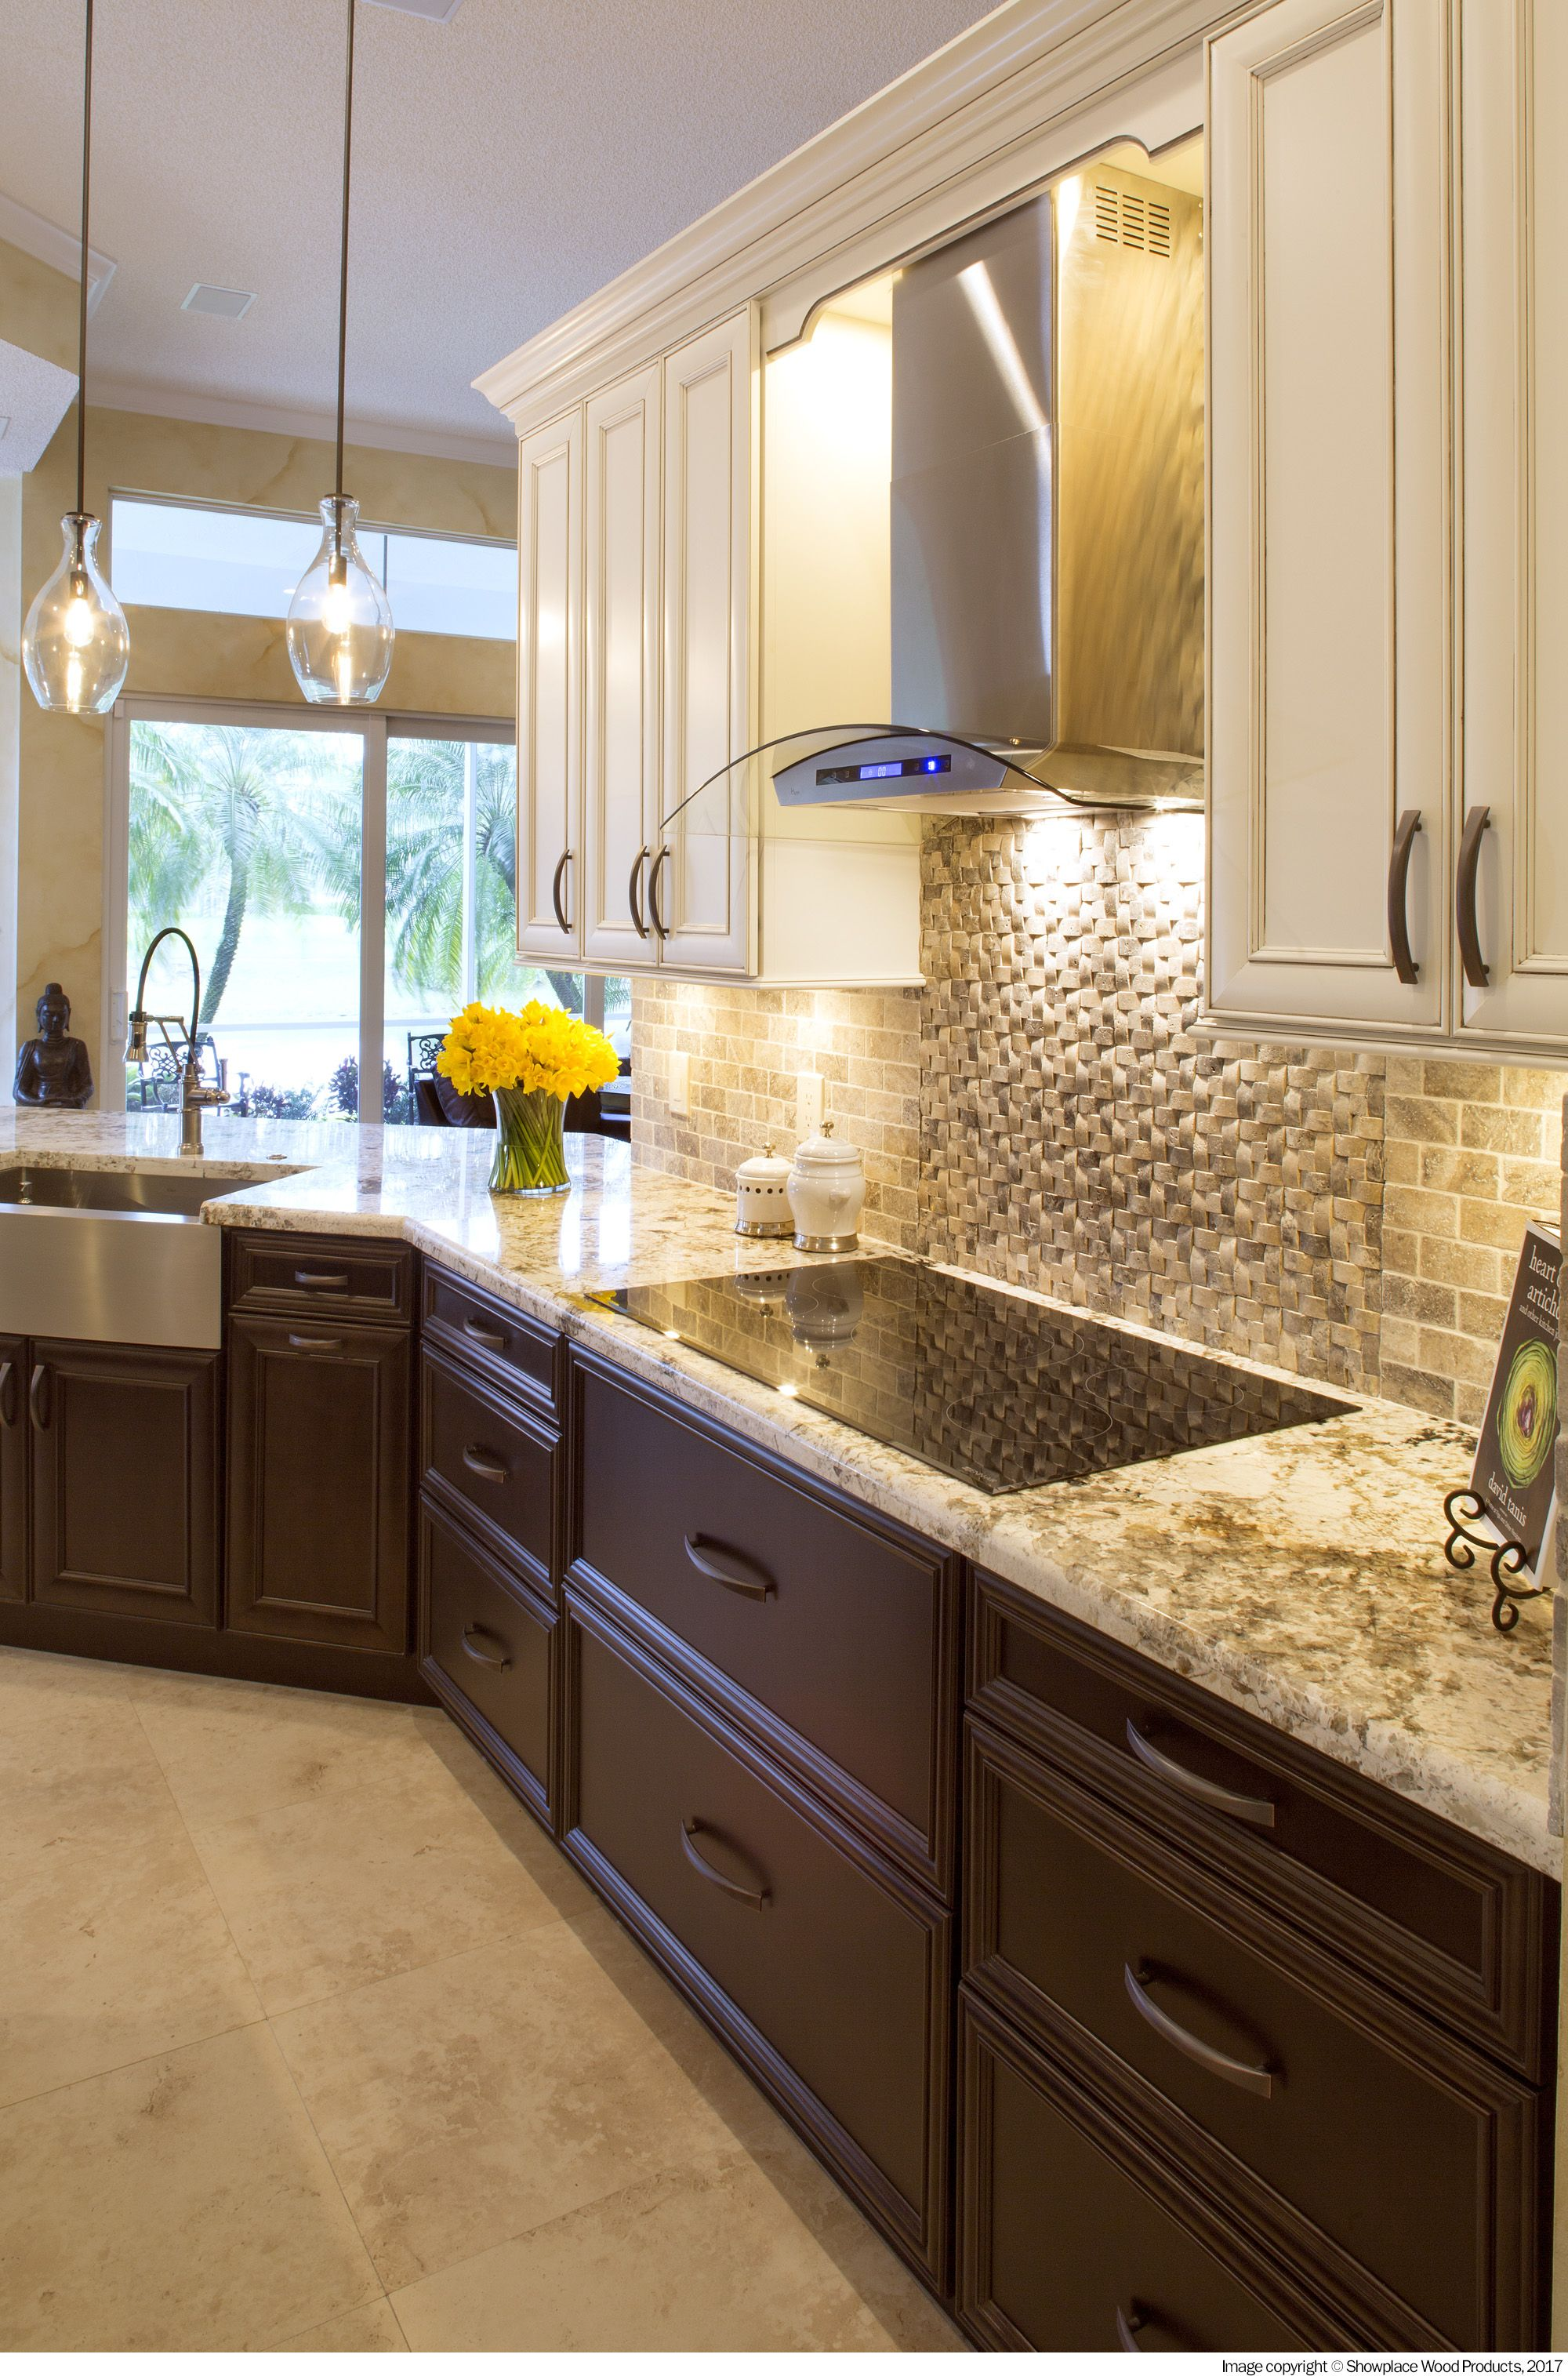 An Amazing Transformation In Pembroke Fl Meant To Increase The Value And Attraction For Selling Th Espresso Kitchen Cabinets Kitchen Remodel Espresso Kitchen